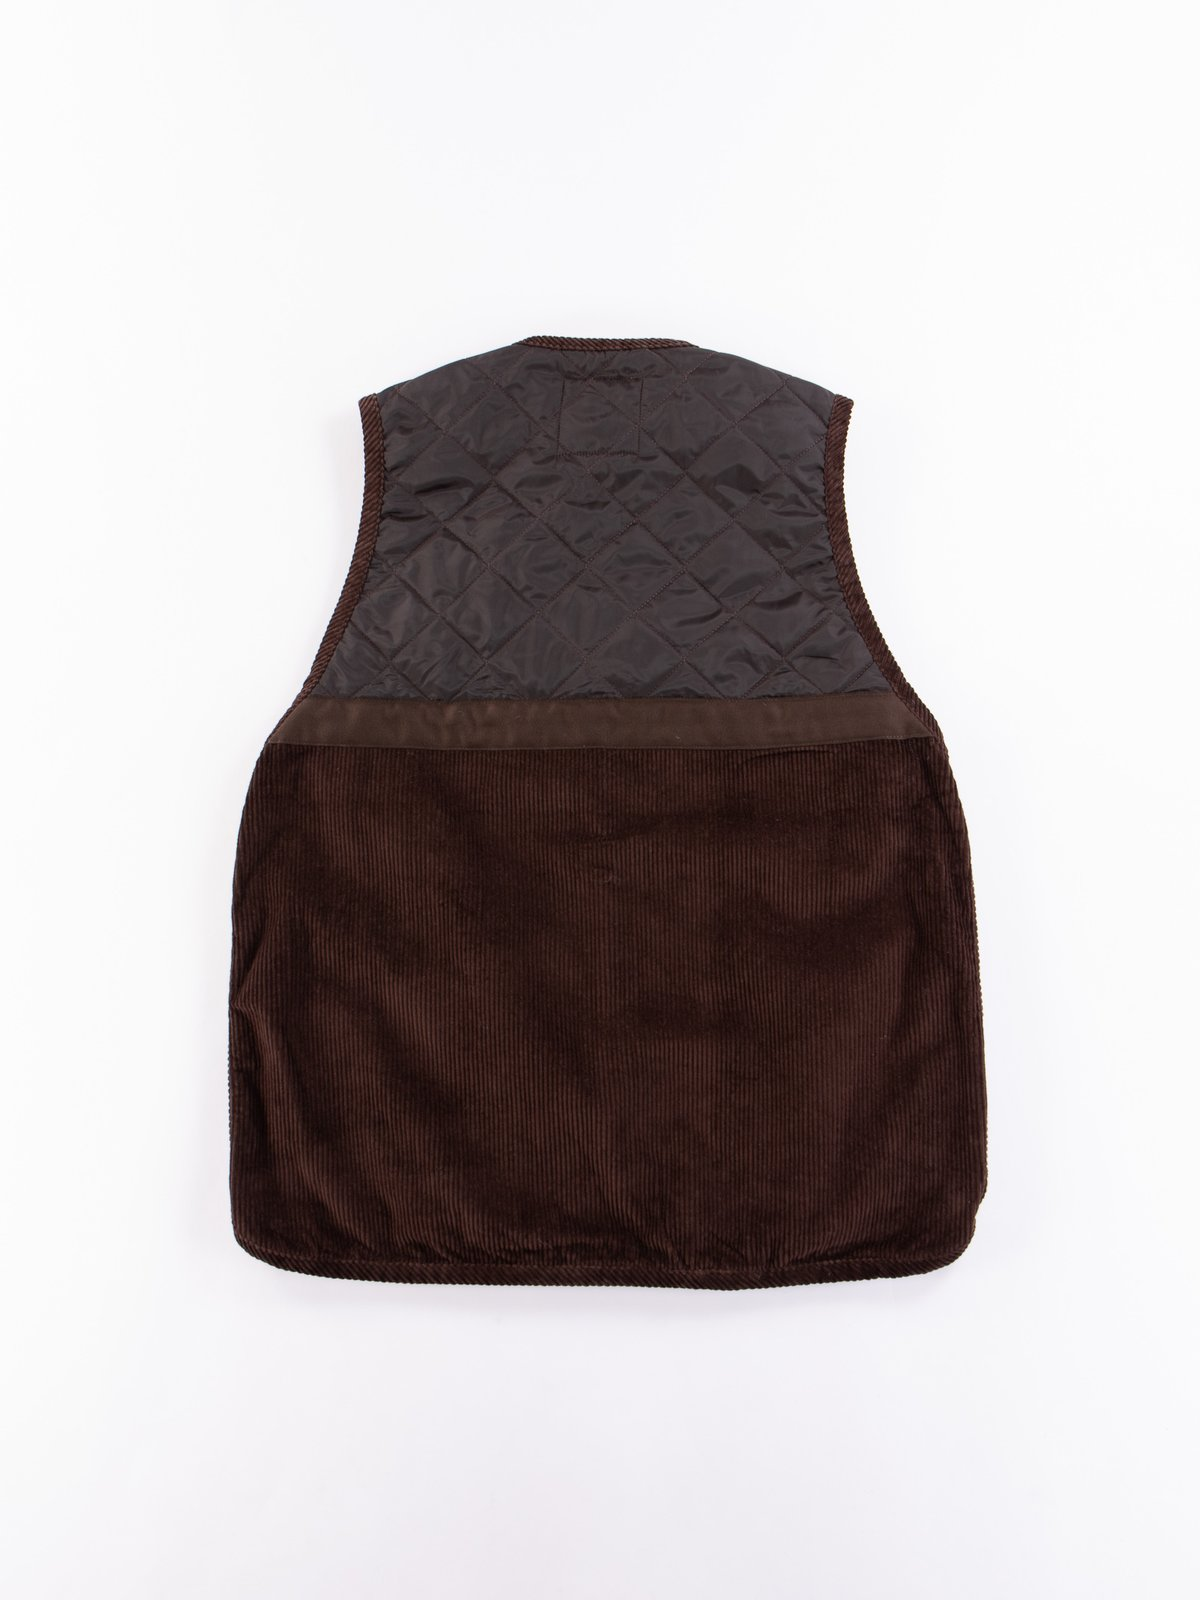 Brown Washed Cord Taped Gilet - Image 6